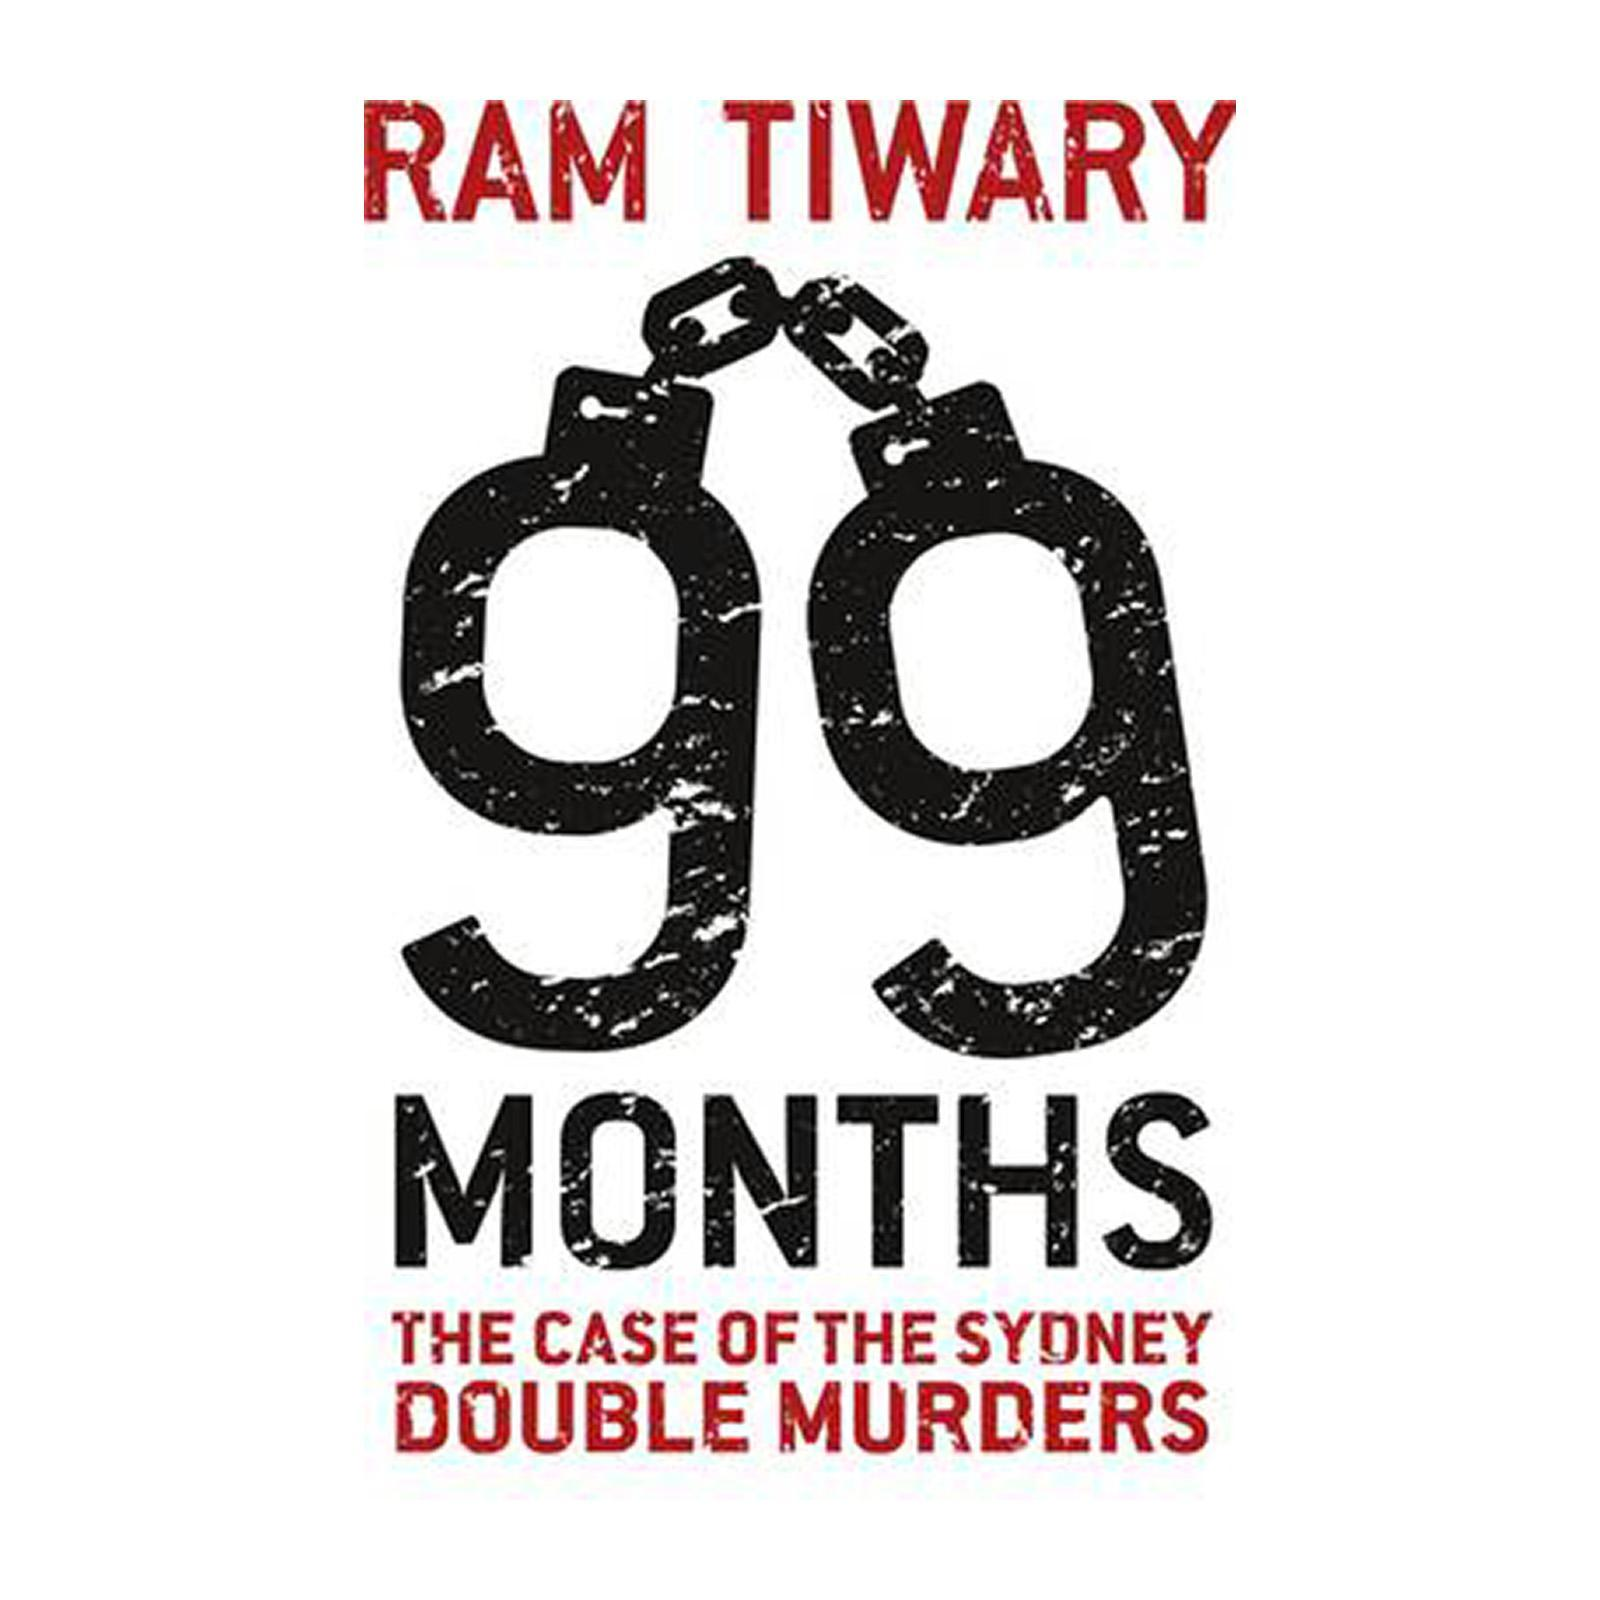 99 Months: The Case Of The Sydney Double Murders (Paperback)